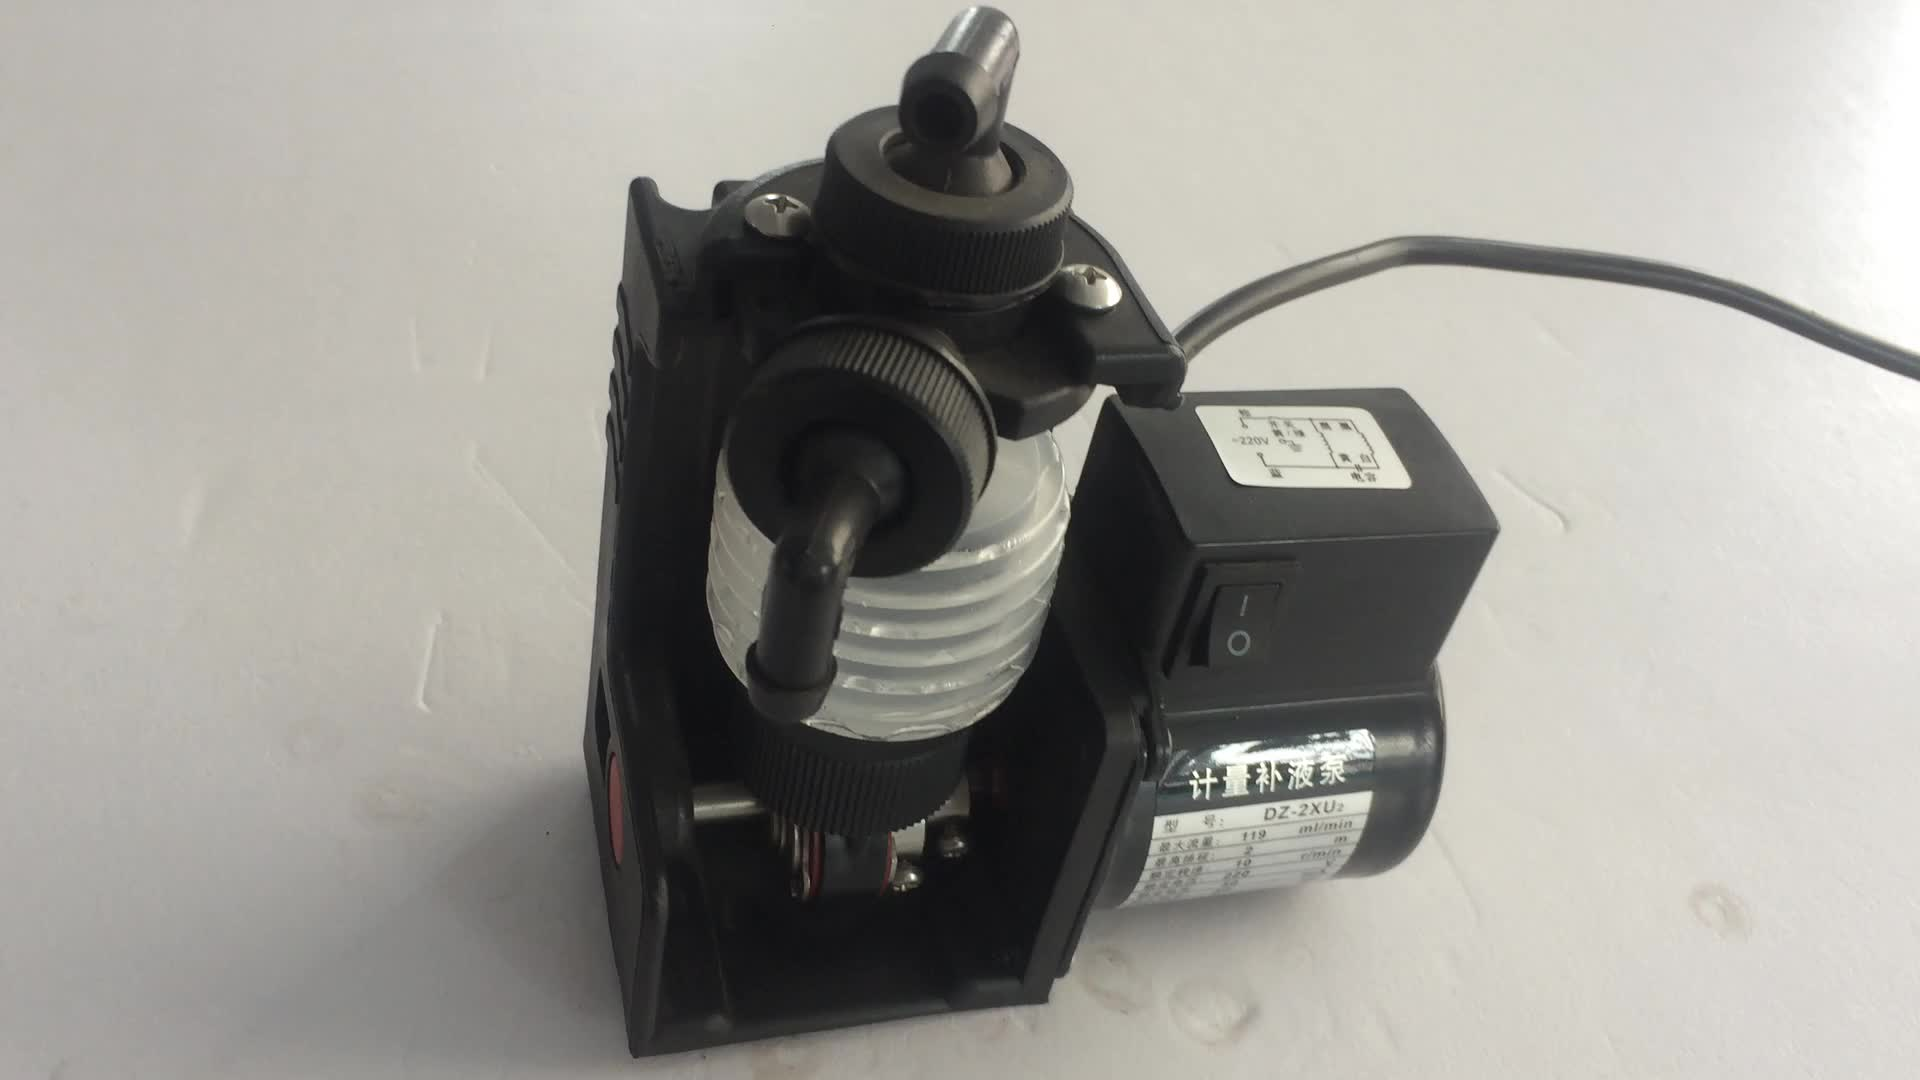 SISAN DZN-2Z Japan Iwaki 4-20mA and relays control auto metering pumps micro dosing pump